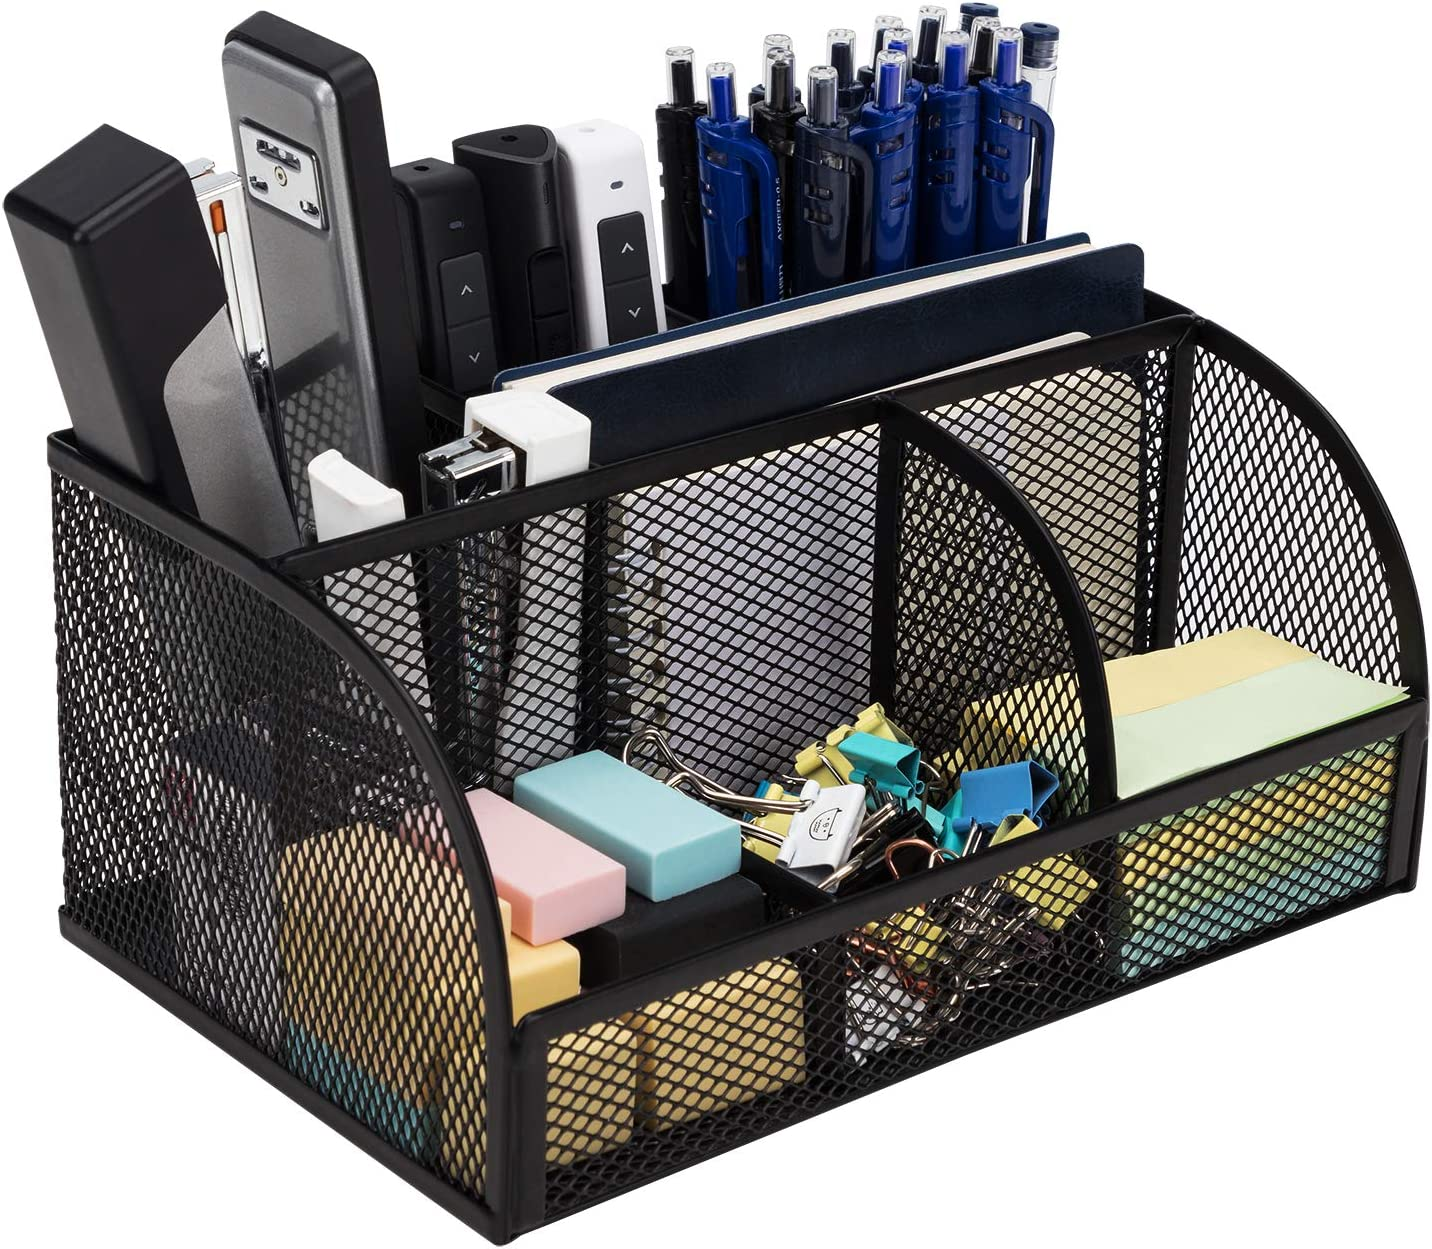 Deli Mesh Desktop Organizer Office Supplies Caddy with Pen Holder and Storage Baskets for Desk Accessories, 7 Compartments, Black